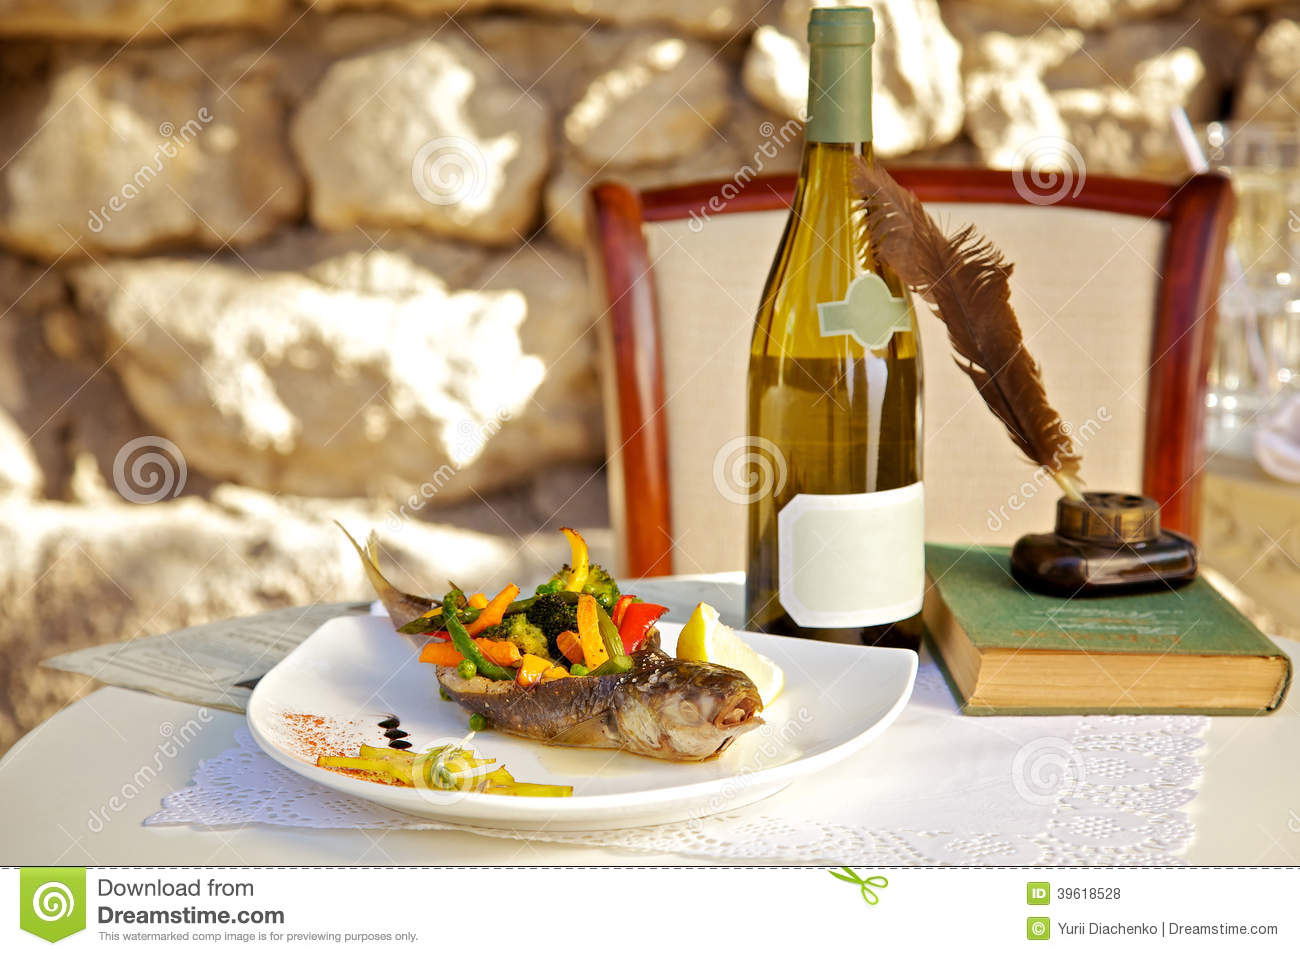 Served table in a restaurant for Fish in a bottle menu